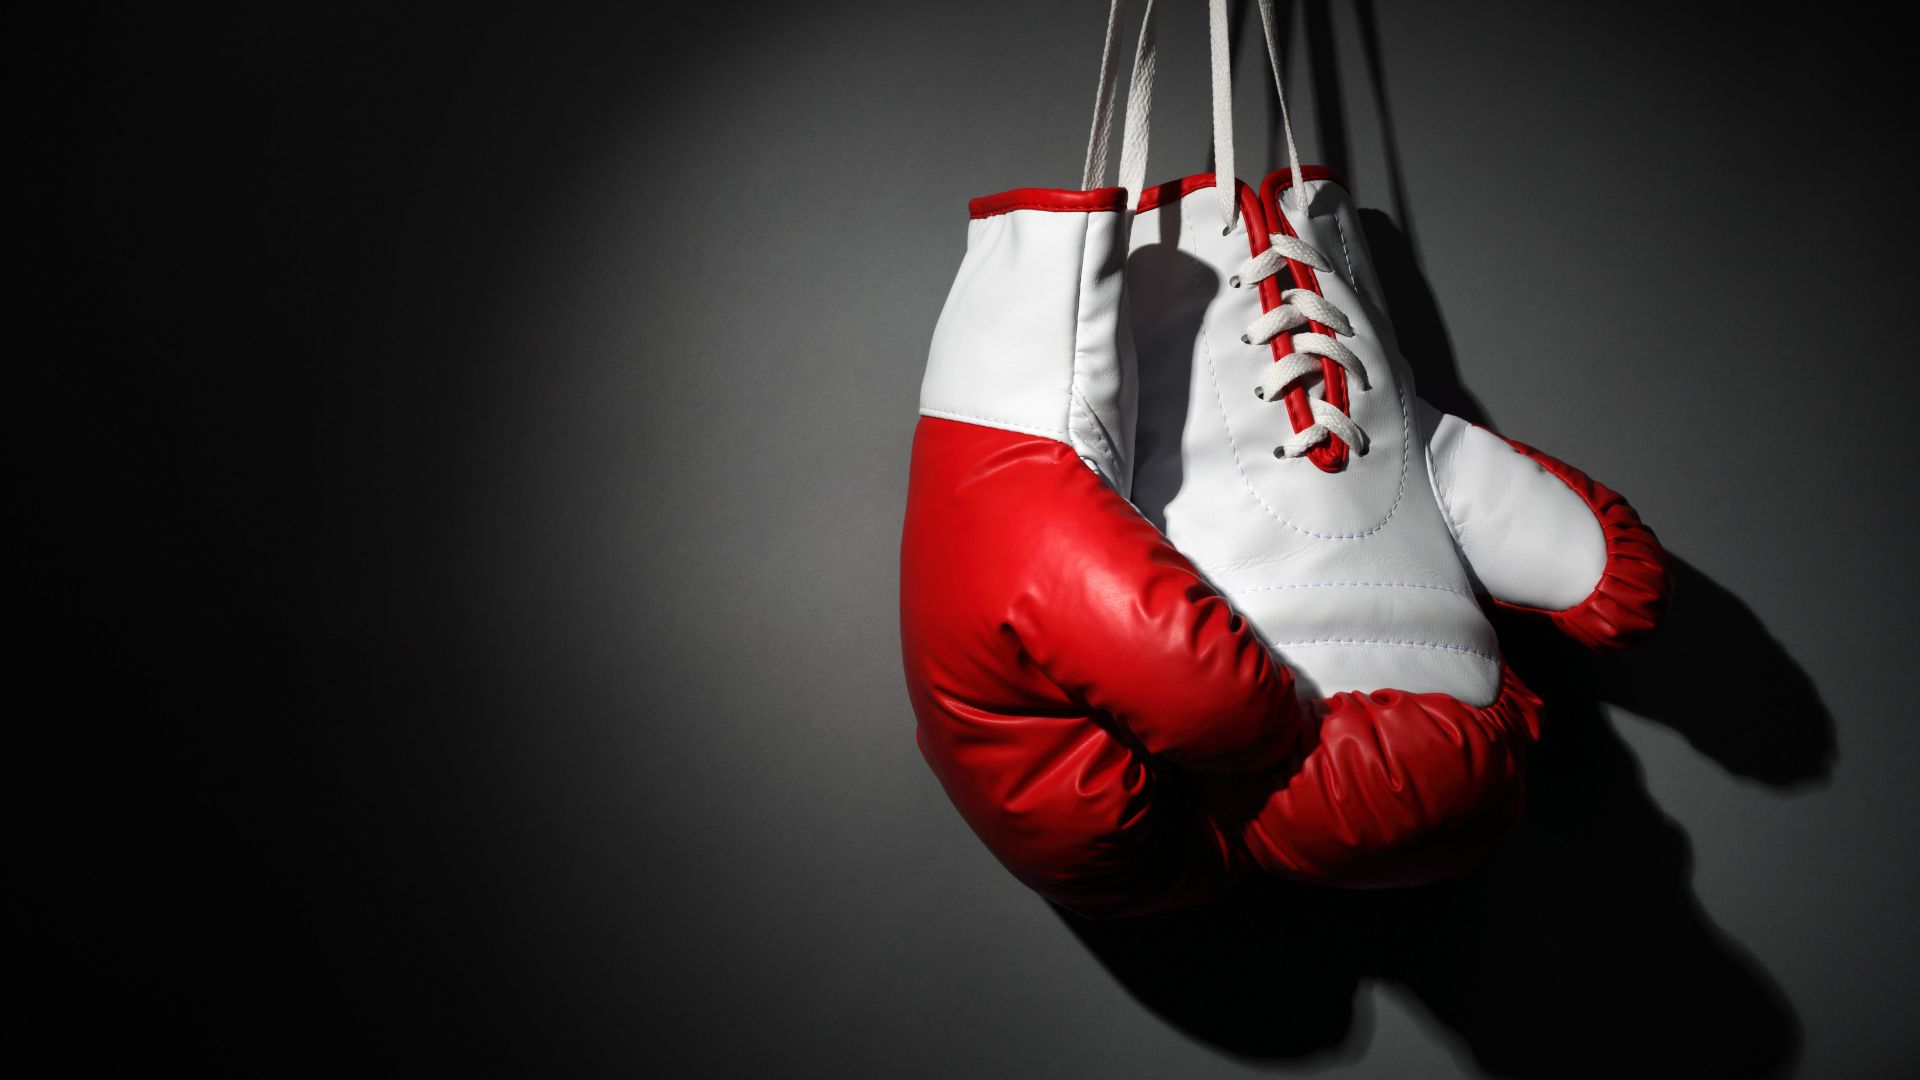 Boxing gloves, red, white, boxing (horizontal)